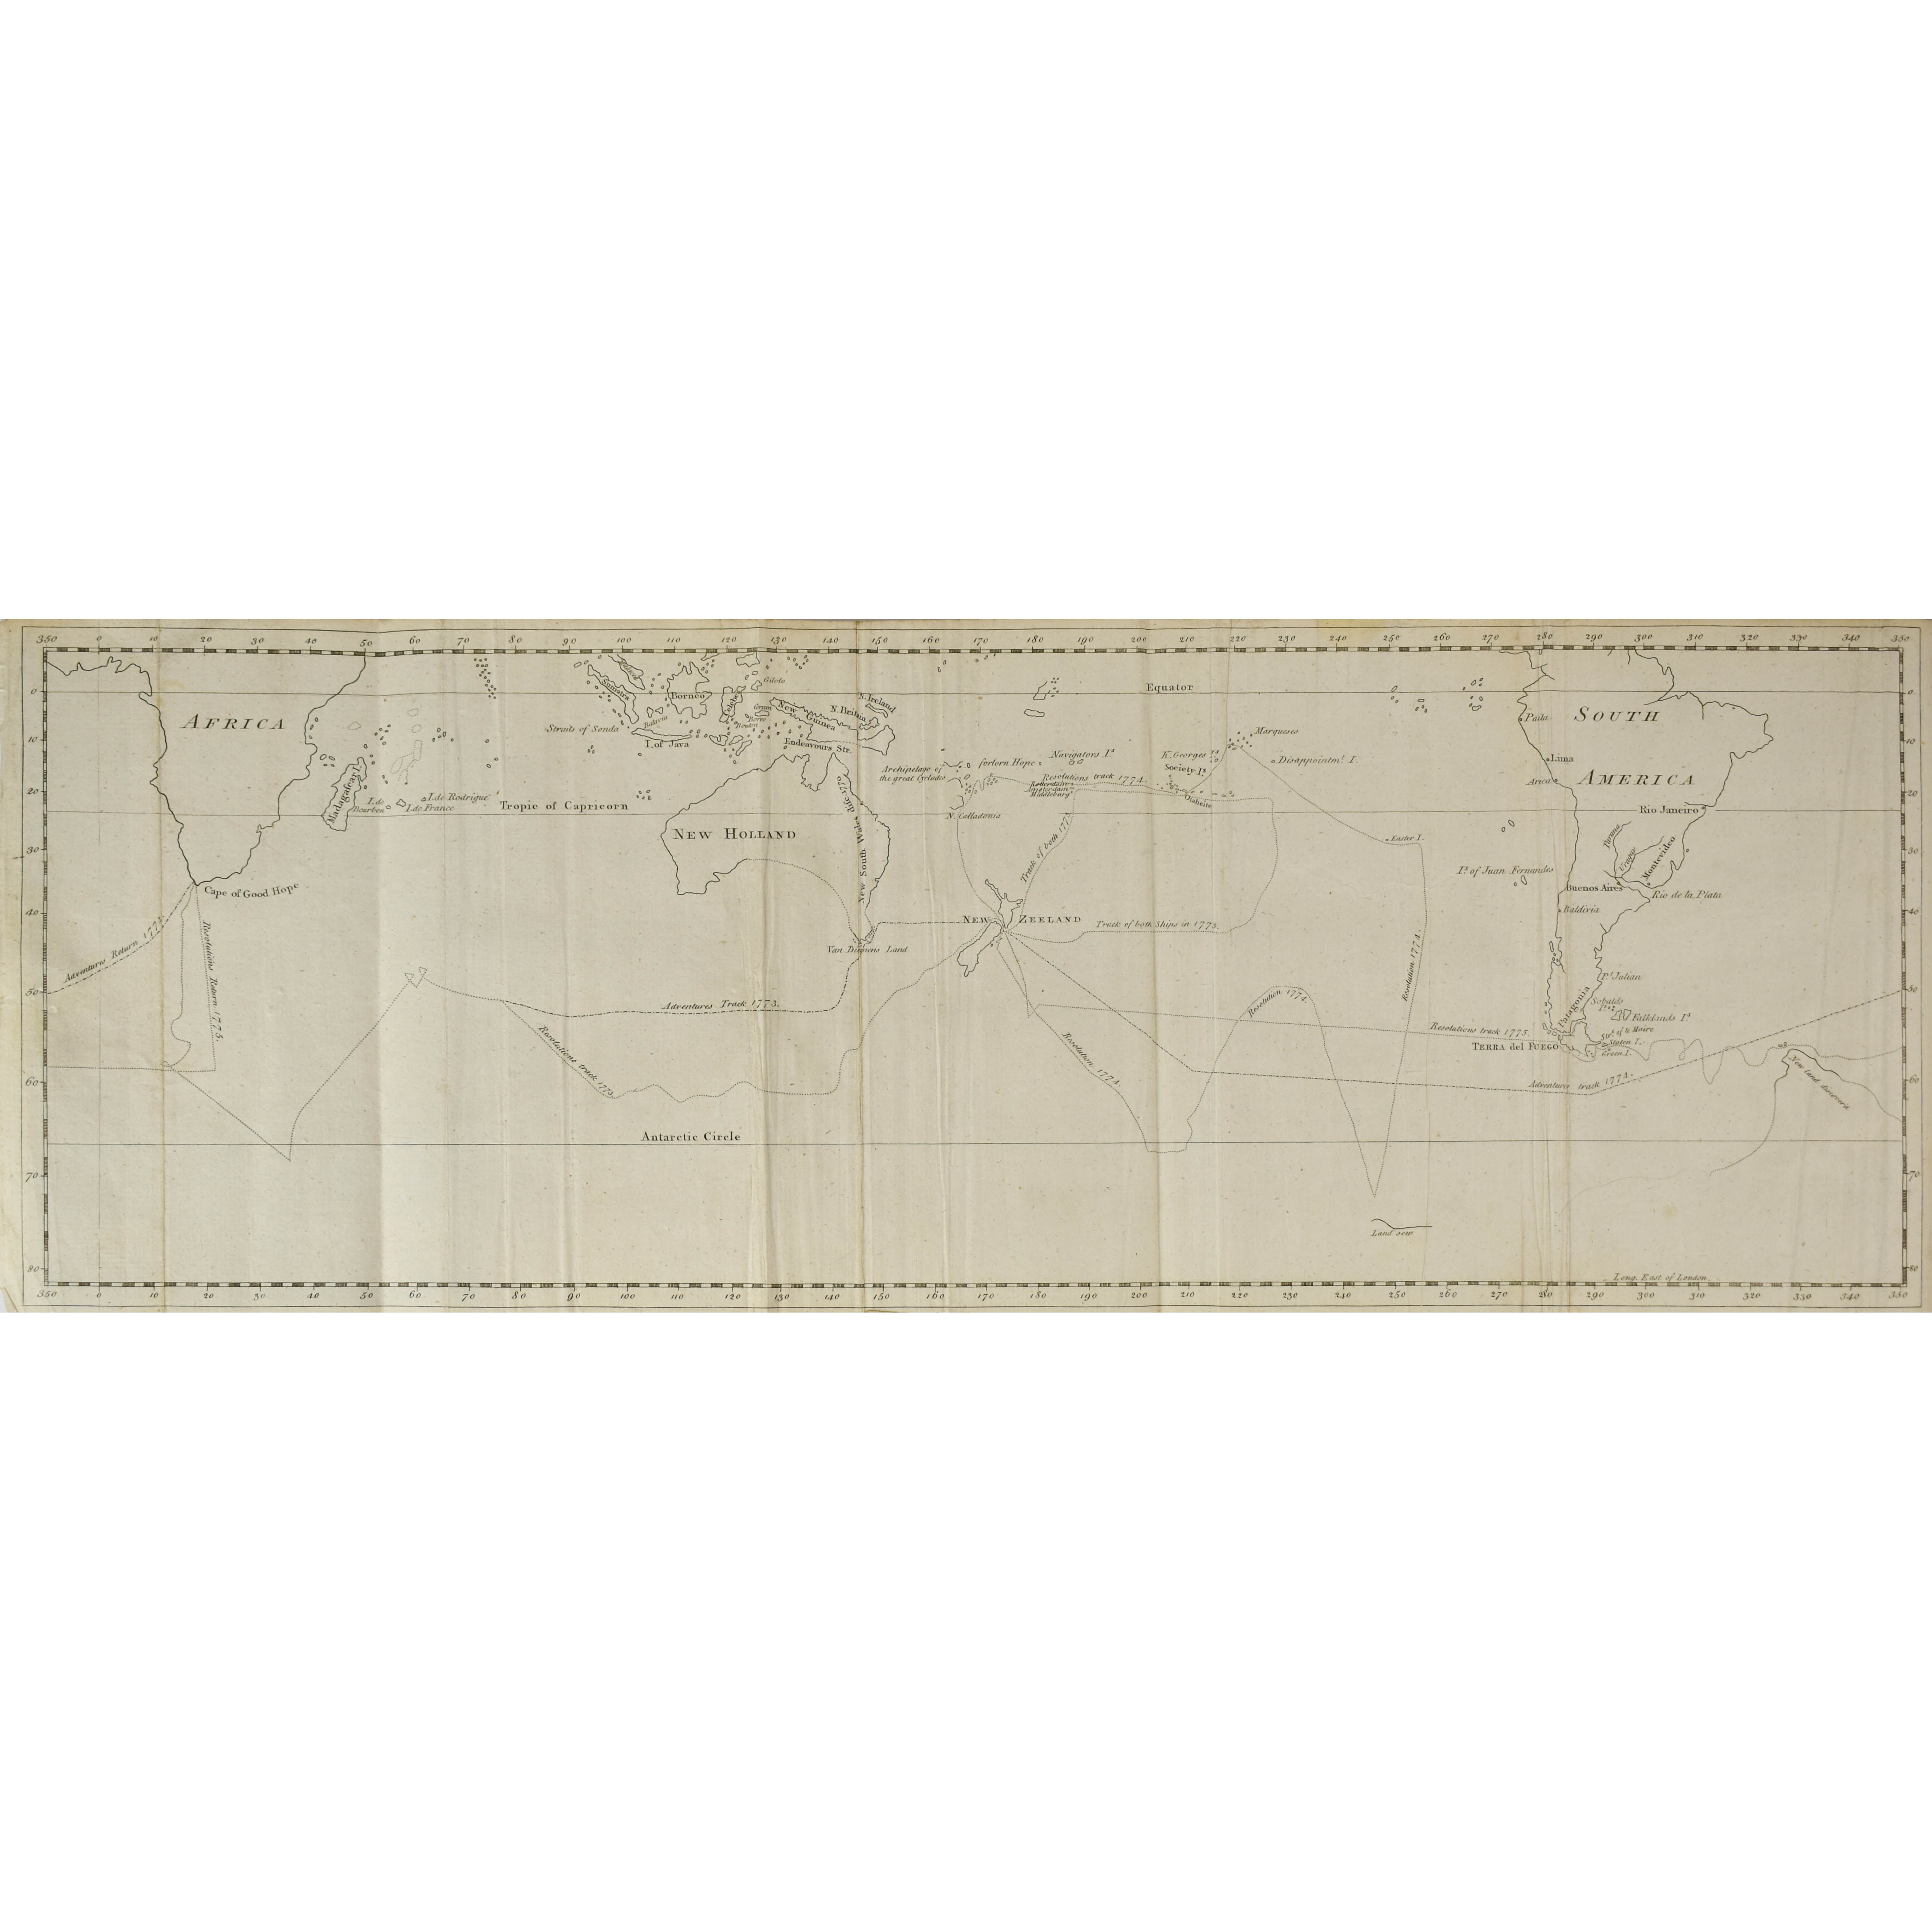 A Journal of Captain Cook's Last Voyage to the Pacific Ocean, on Discovery: Performed in the Years 1776, 1777, 1778, 1779, and 1780 Illustrated with Cuts and Charts, shewing the Tracks of the Ships employed in this expedition. (photo 3)